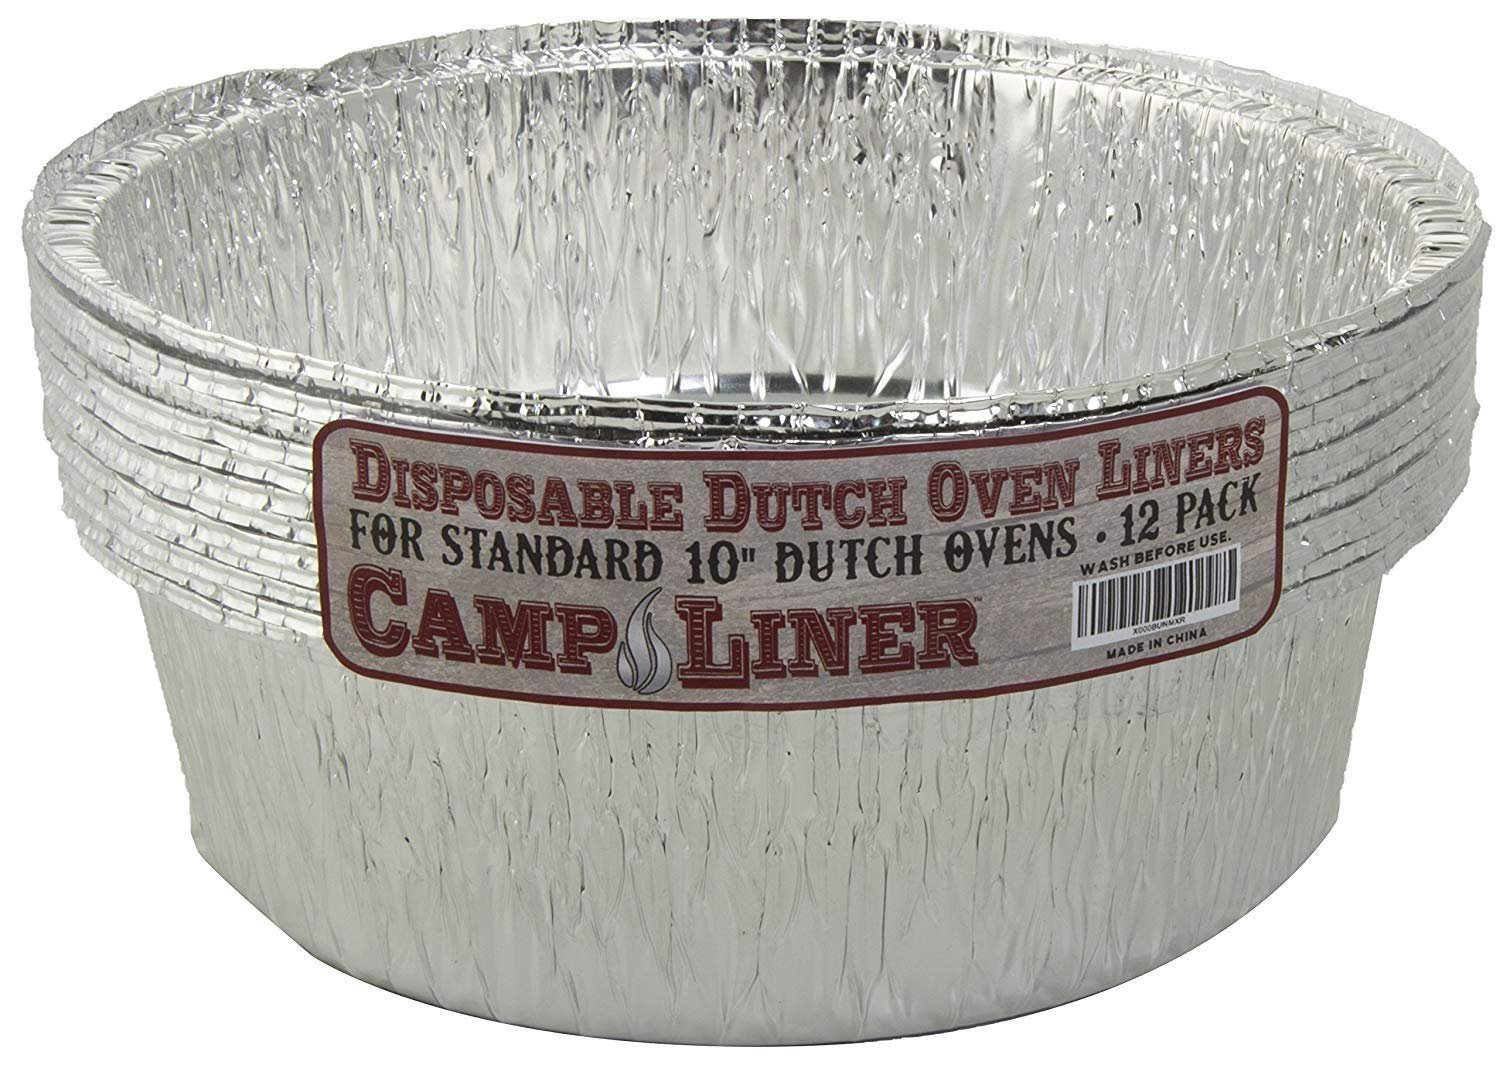 Campliner Dutch Oven Liners, 12 Pack of 10'' 4 Quart Disposable Liners - No More Cleaning or Seasoning. Fits Lodge, Camp Chef, And Other Cast Iron Dutch Ovens by CAMP LINER